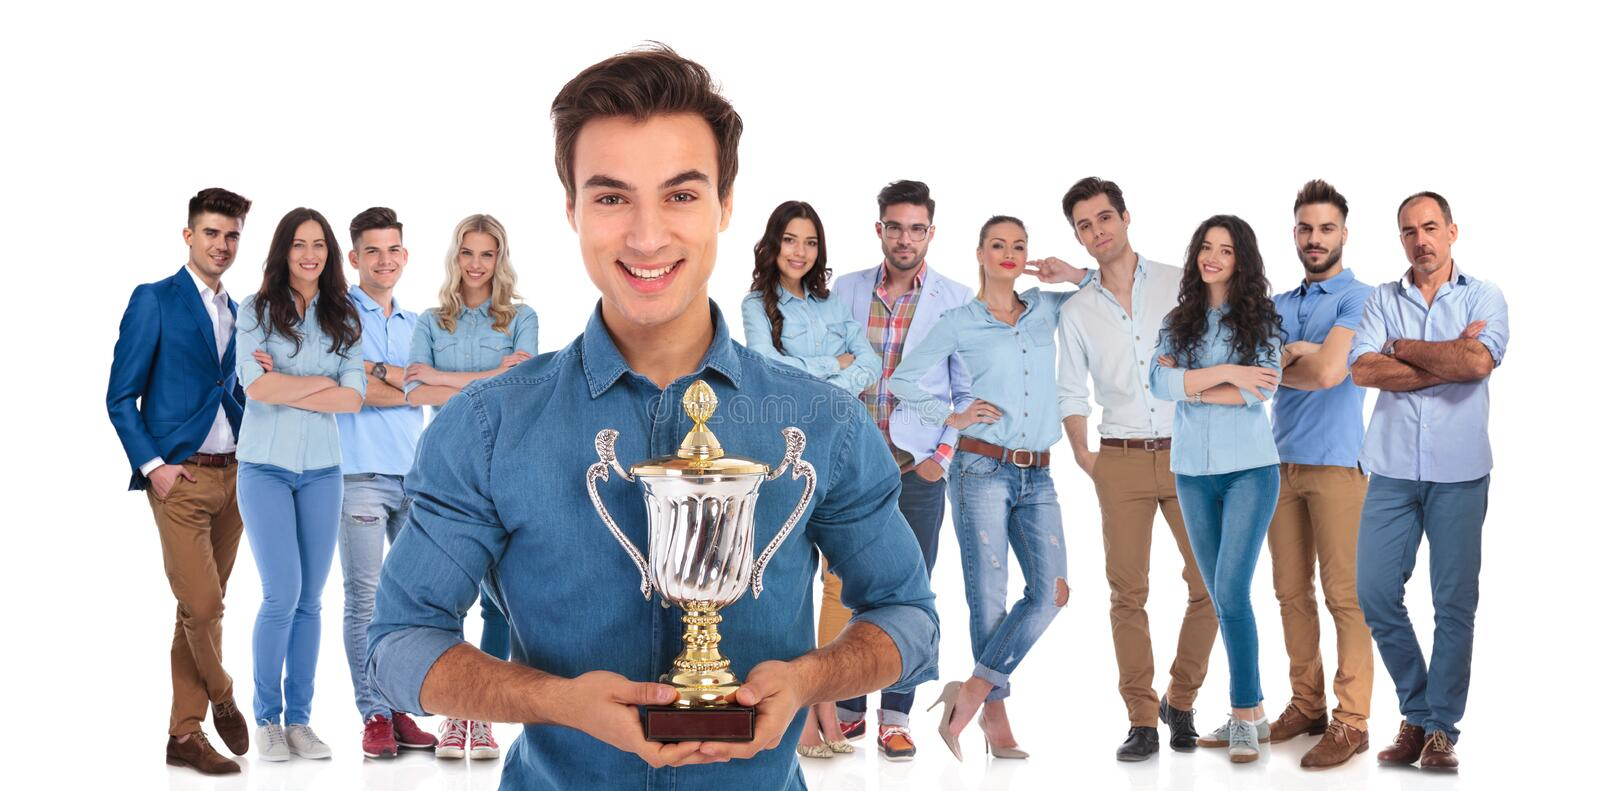 Group leader of young casual team presenting you their cup royalty free stock photography